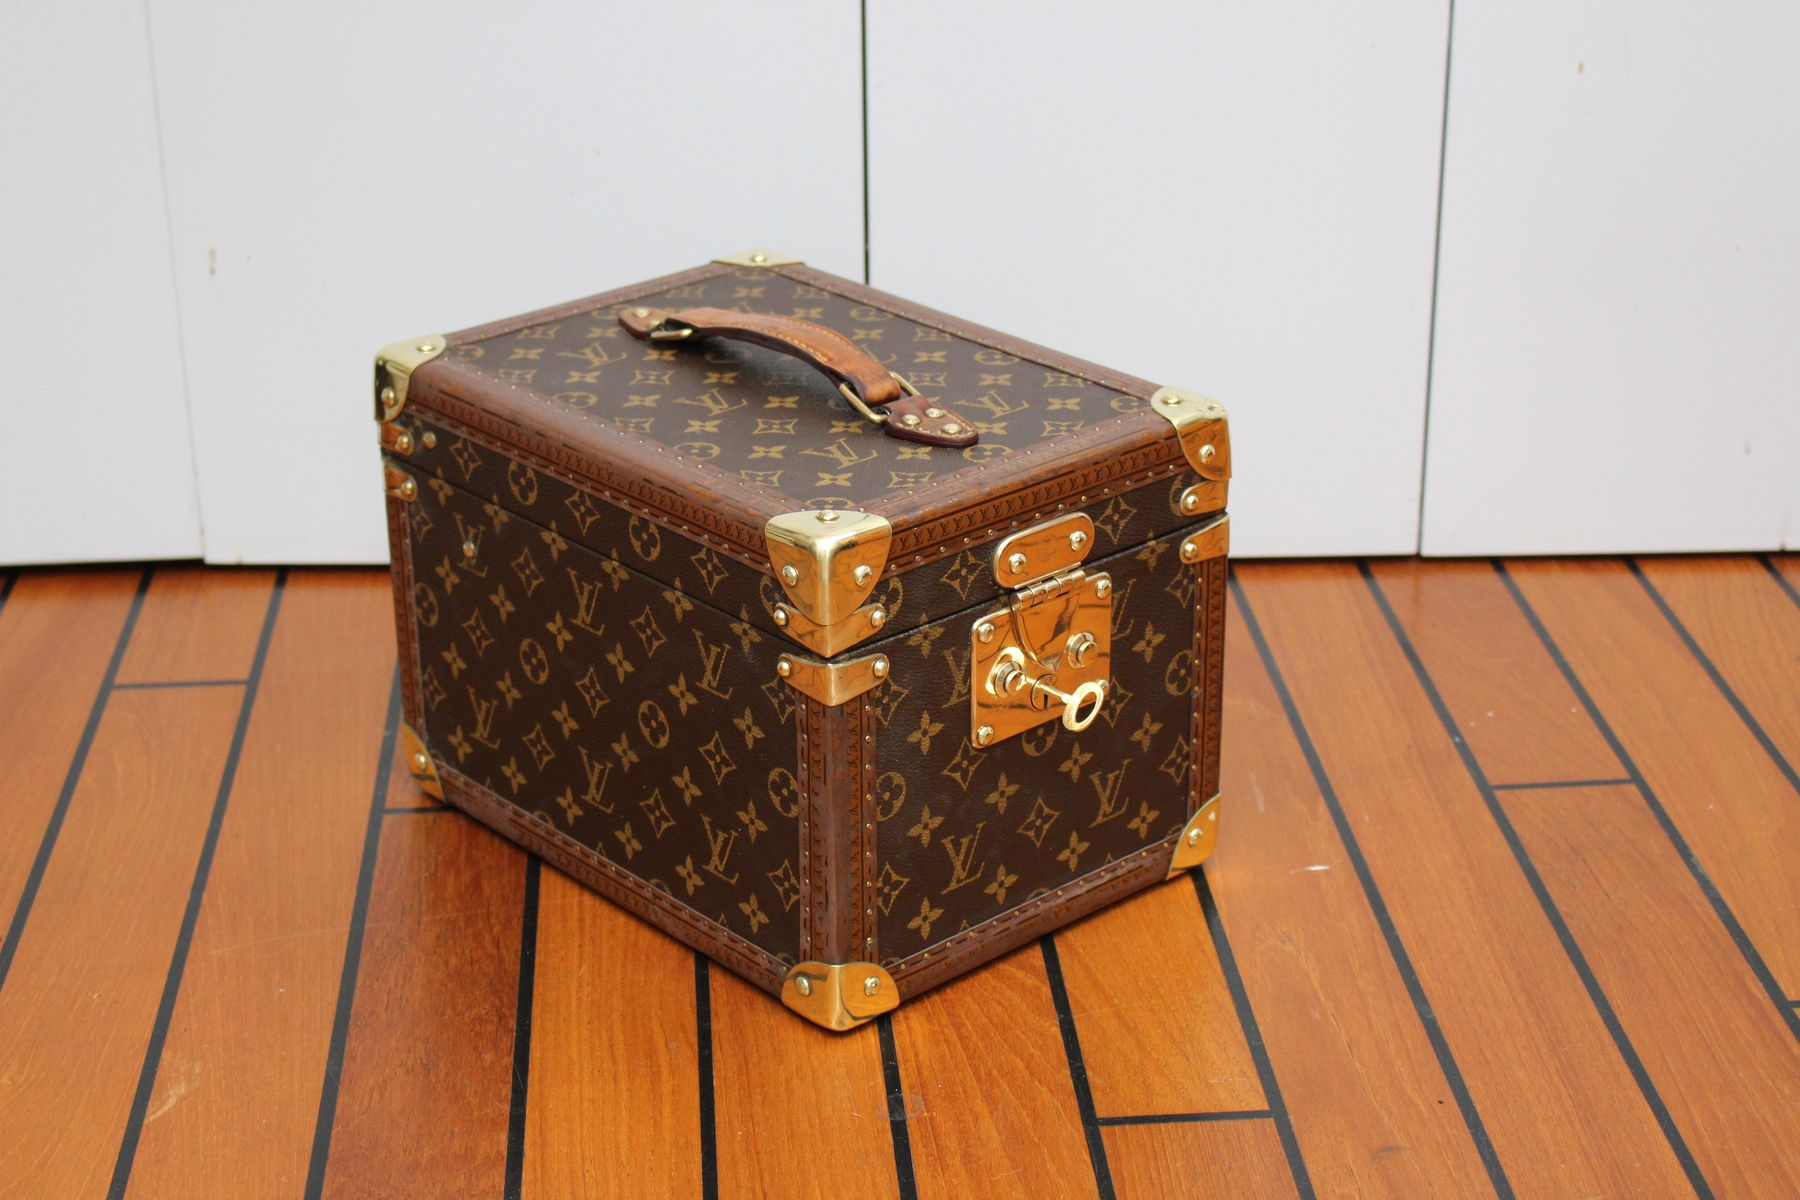 meuble boissons de louis vuitton 2005 en vente sur pamono